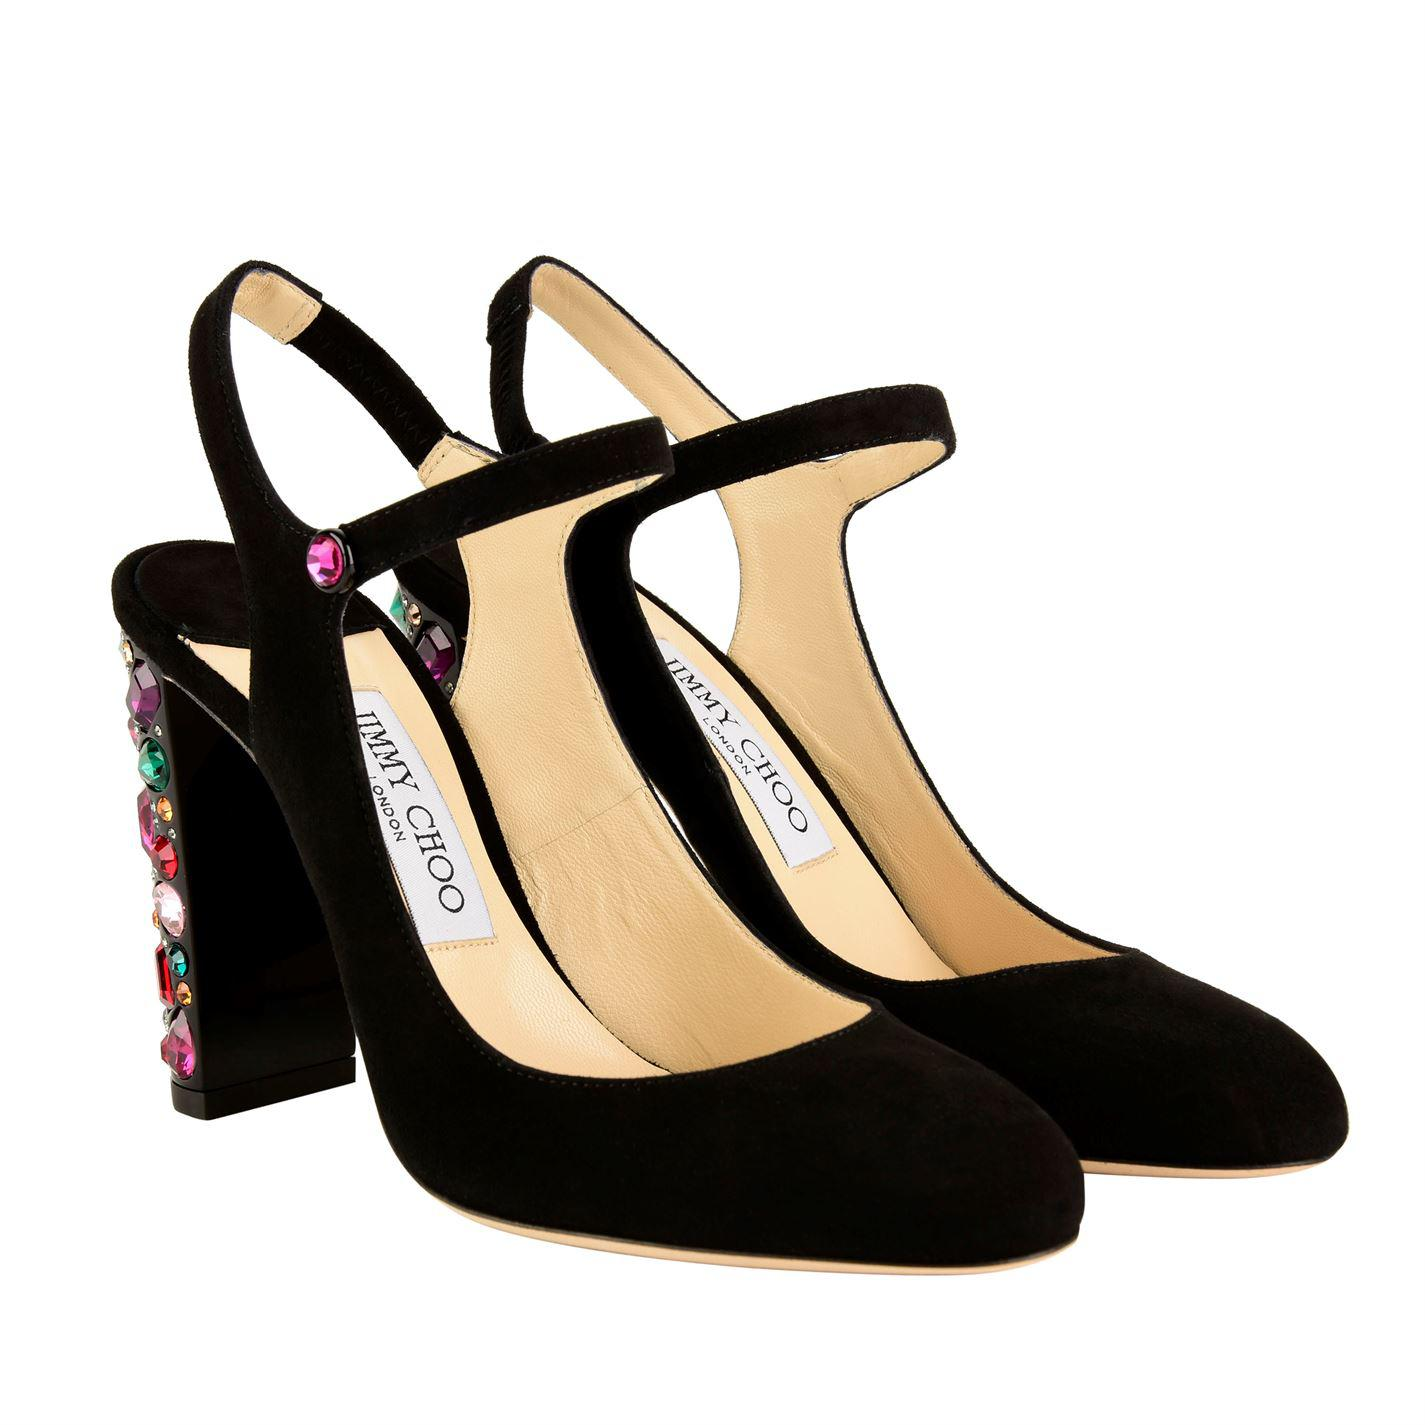 e491ca00611 Lyst - Jimmy Choo Maegan Heels in Black